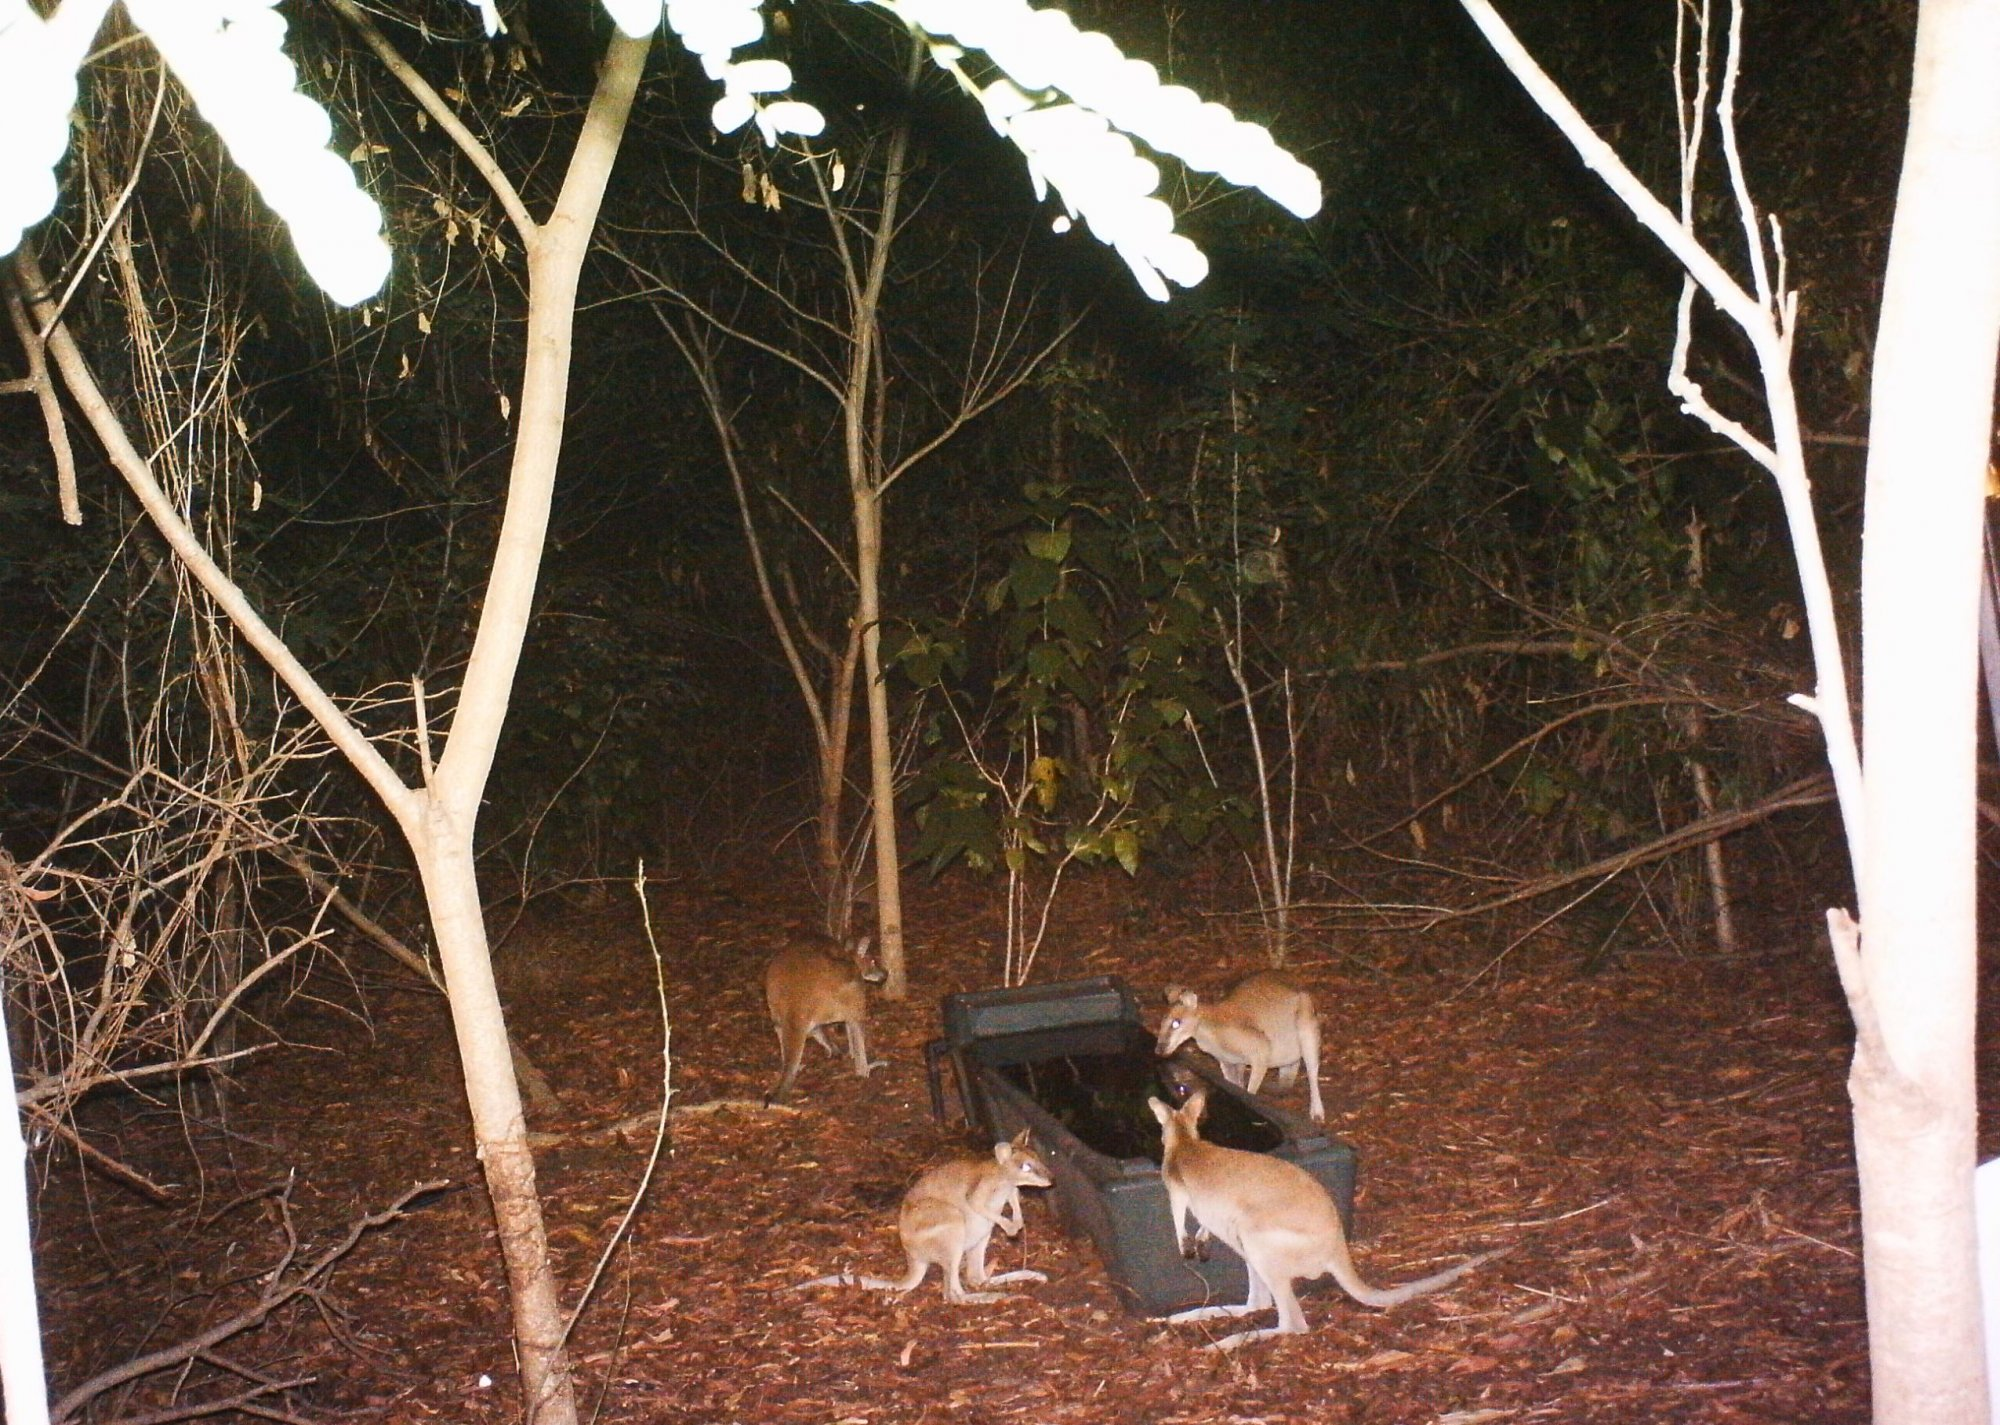 Agile wallabies at east point reserve at night time around a water trough